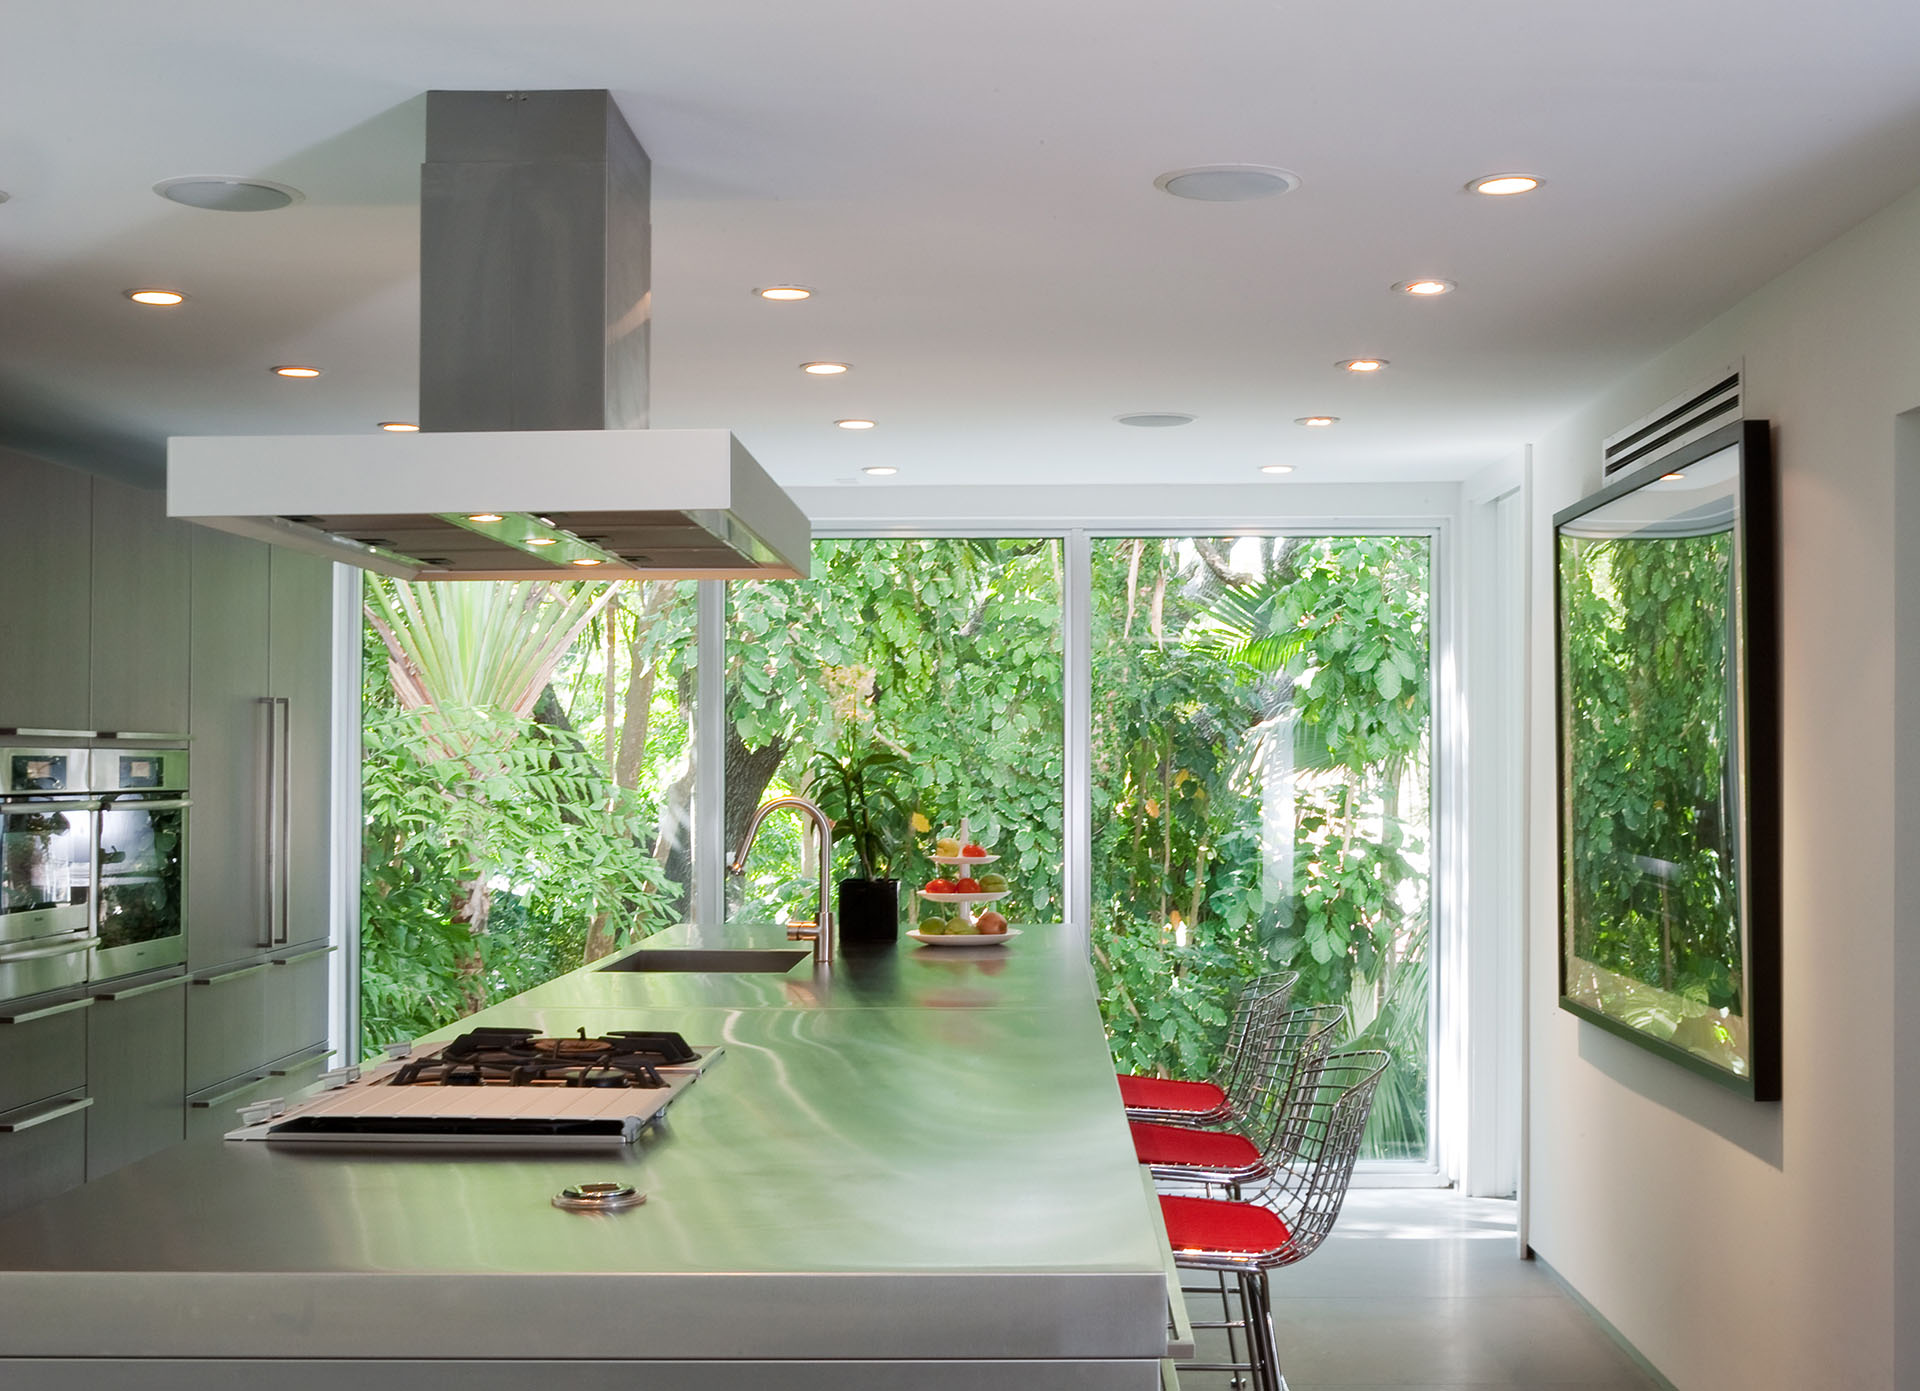 Calm and Minimalistic Spaces of Utopia Residence Coconut Grove by [STRANG] Architecture-06